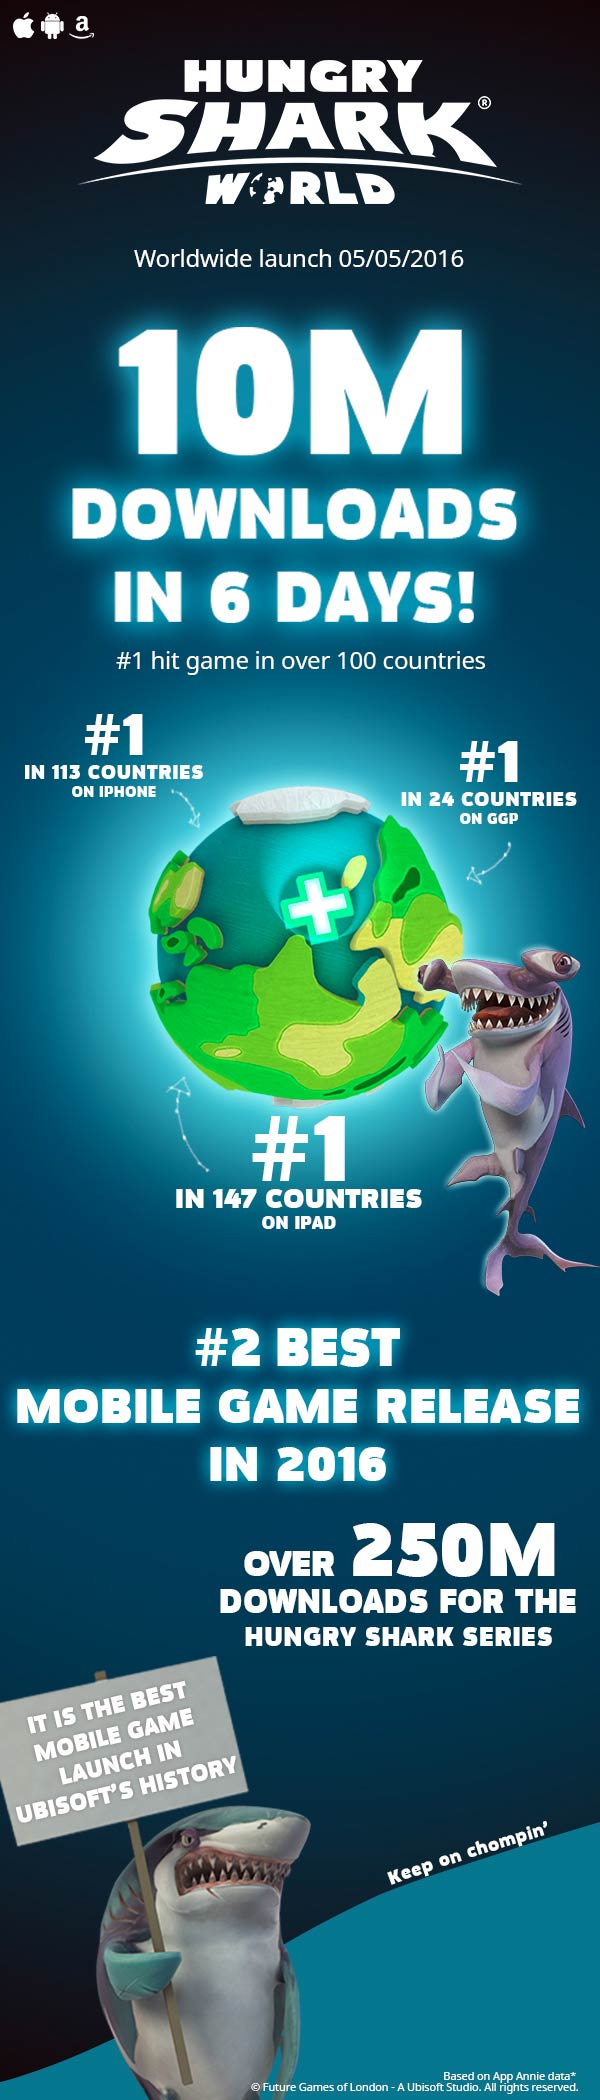 Infographie Hungry Shark World